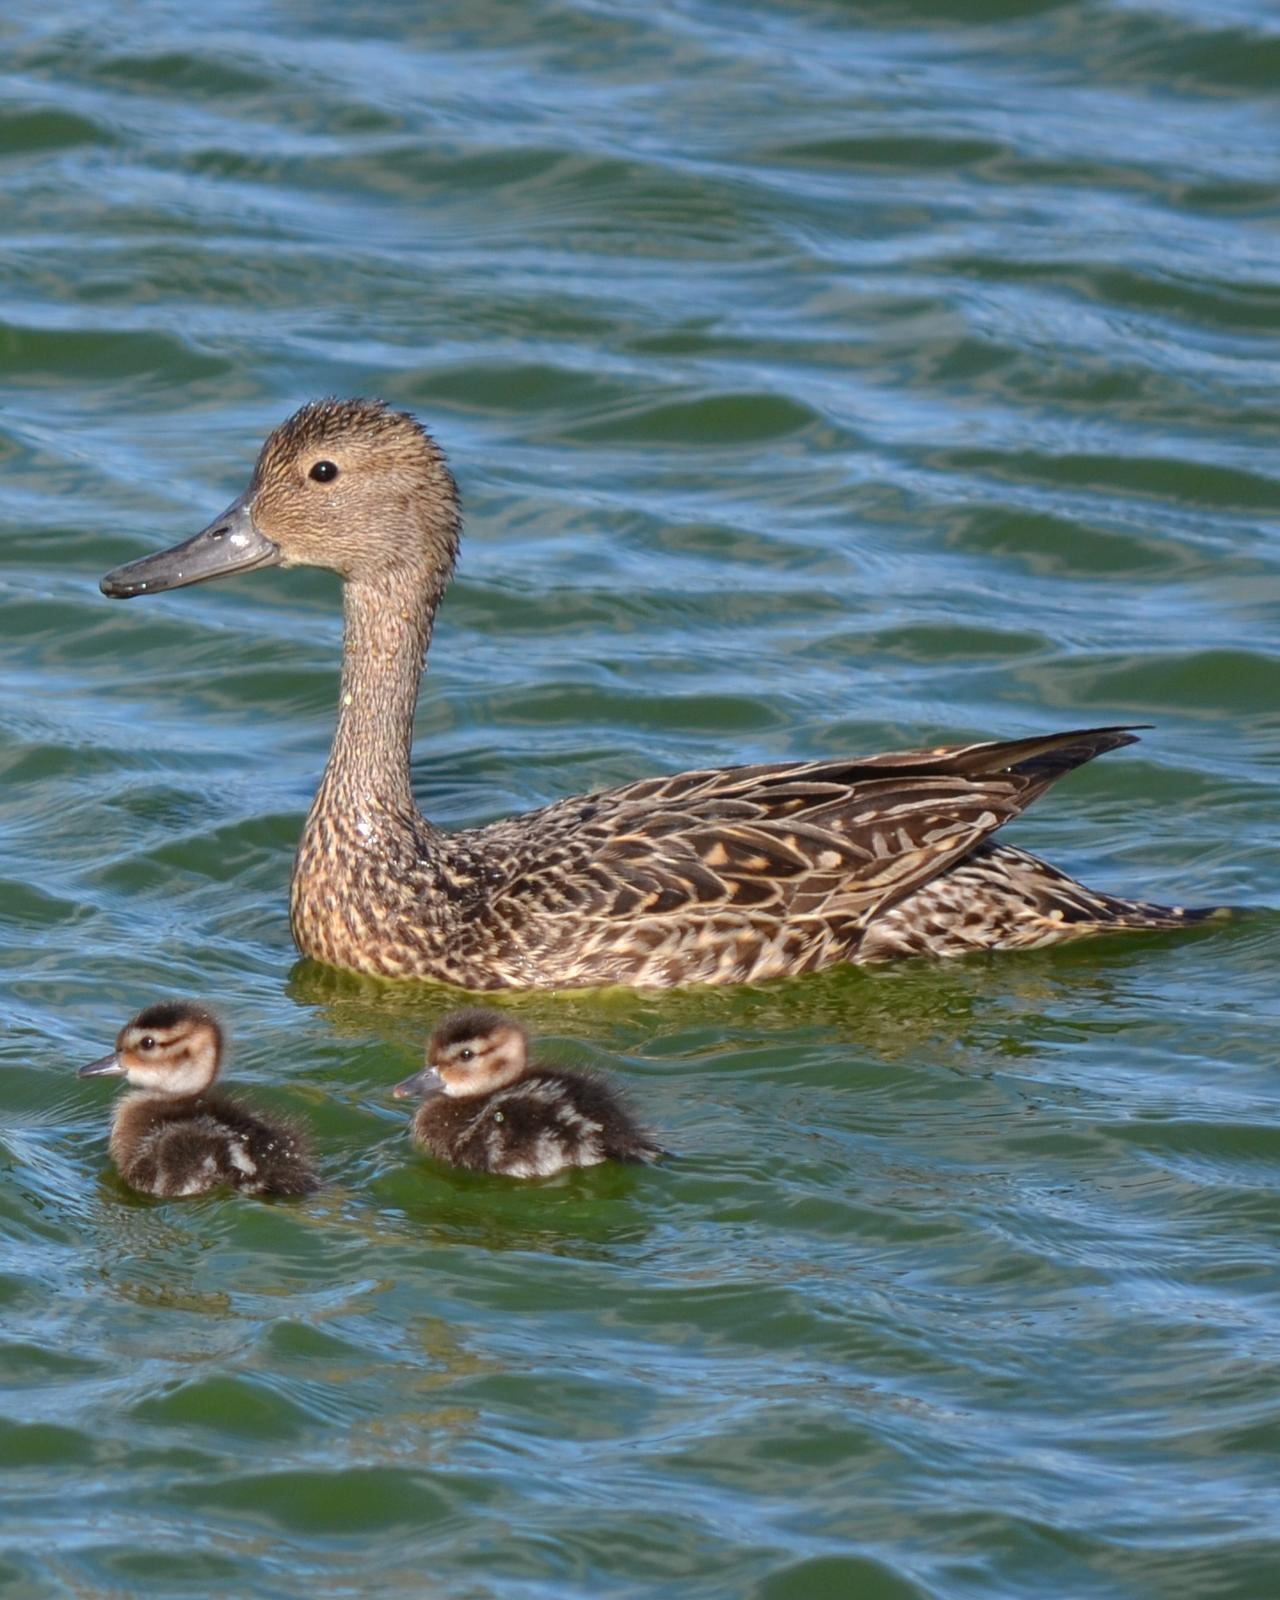 Northern Pintail Photo by Cédric Duhalde